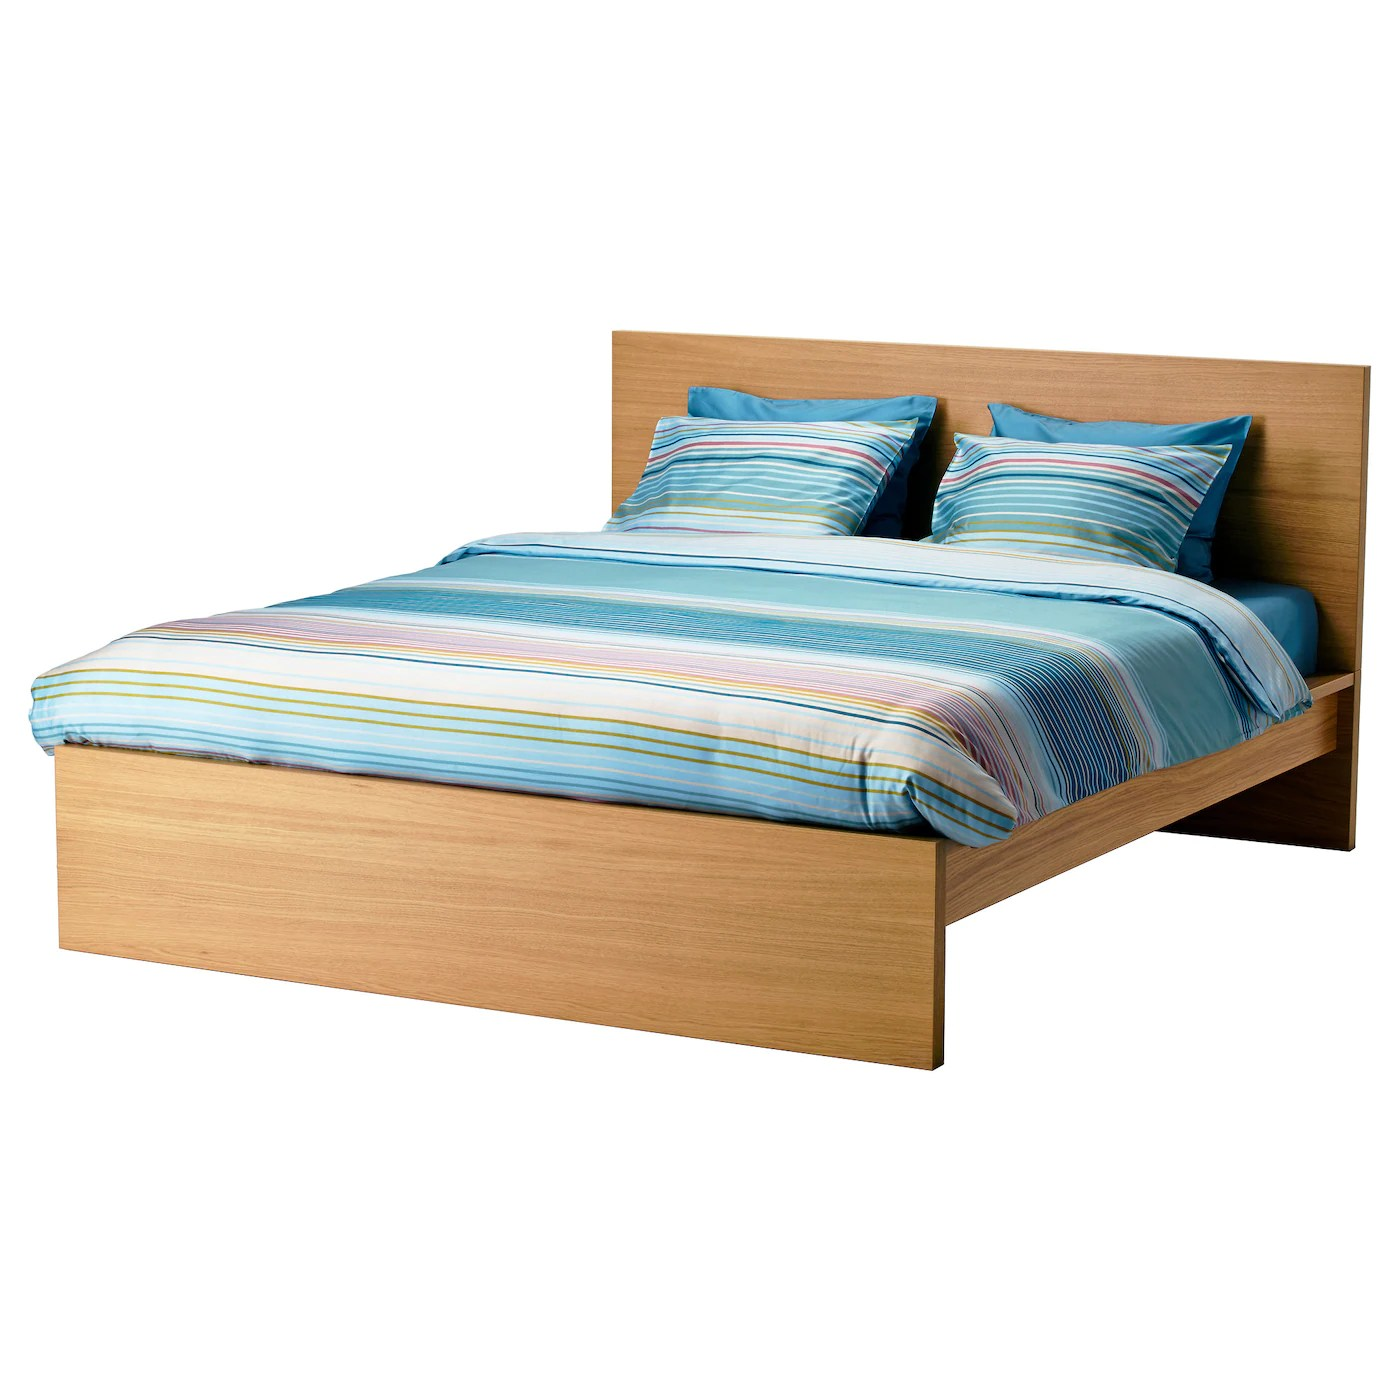 Double Beds Ikea Malm Bed Frame High Oak Veneer Luröy Standard Double Ikea